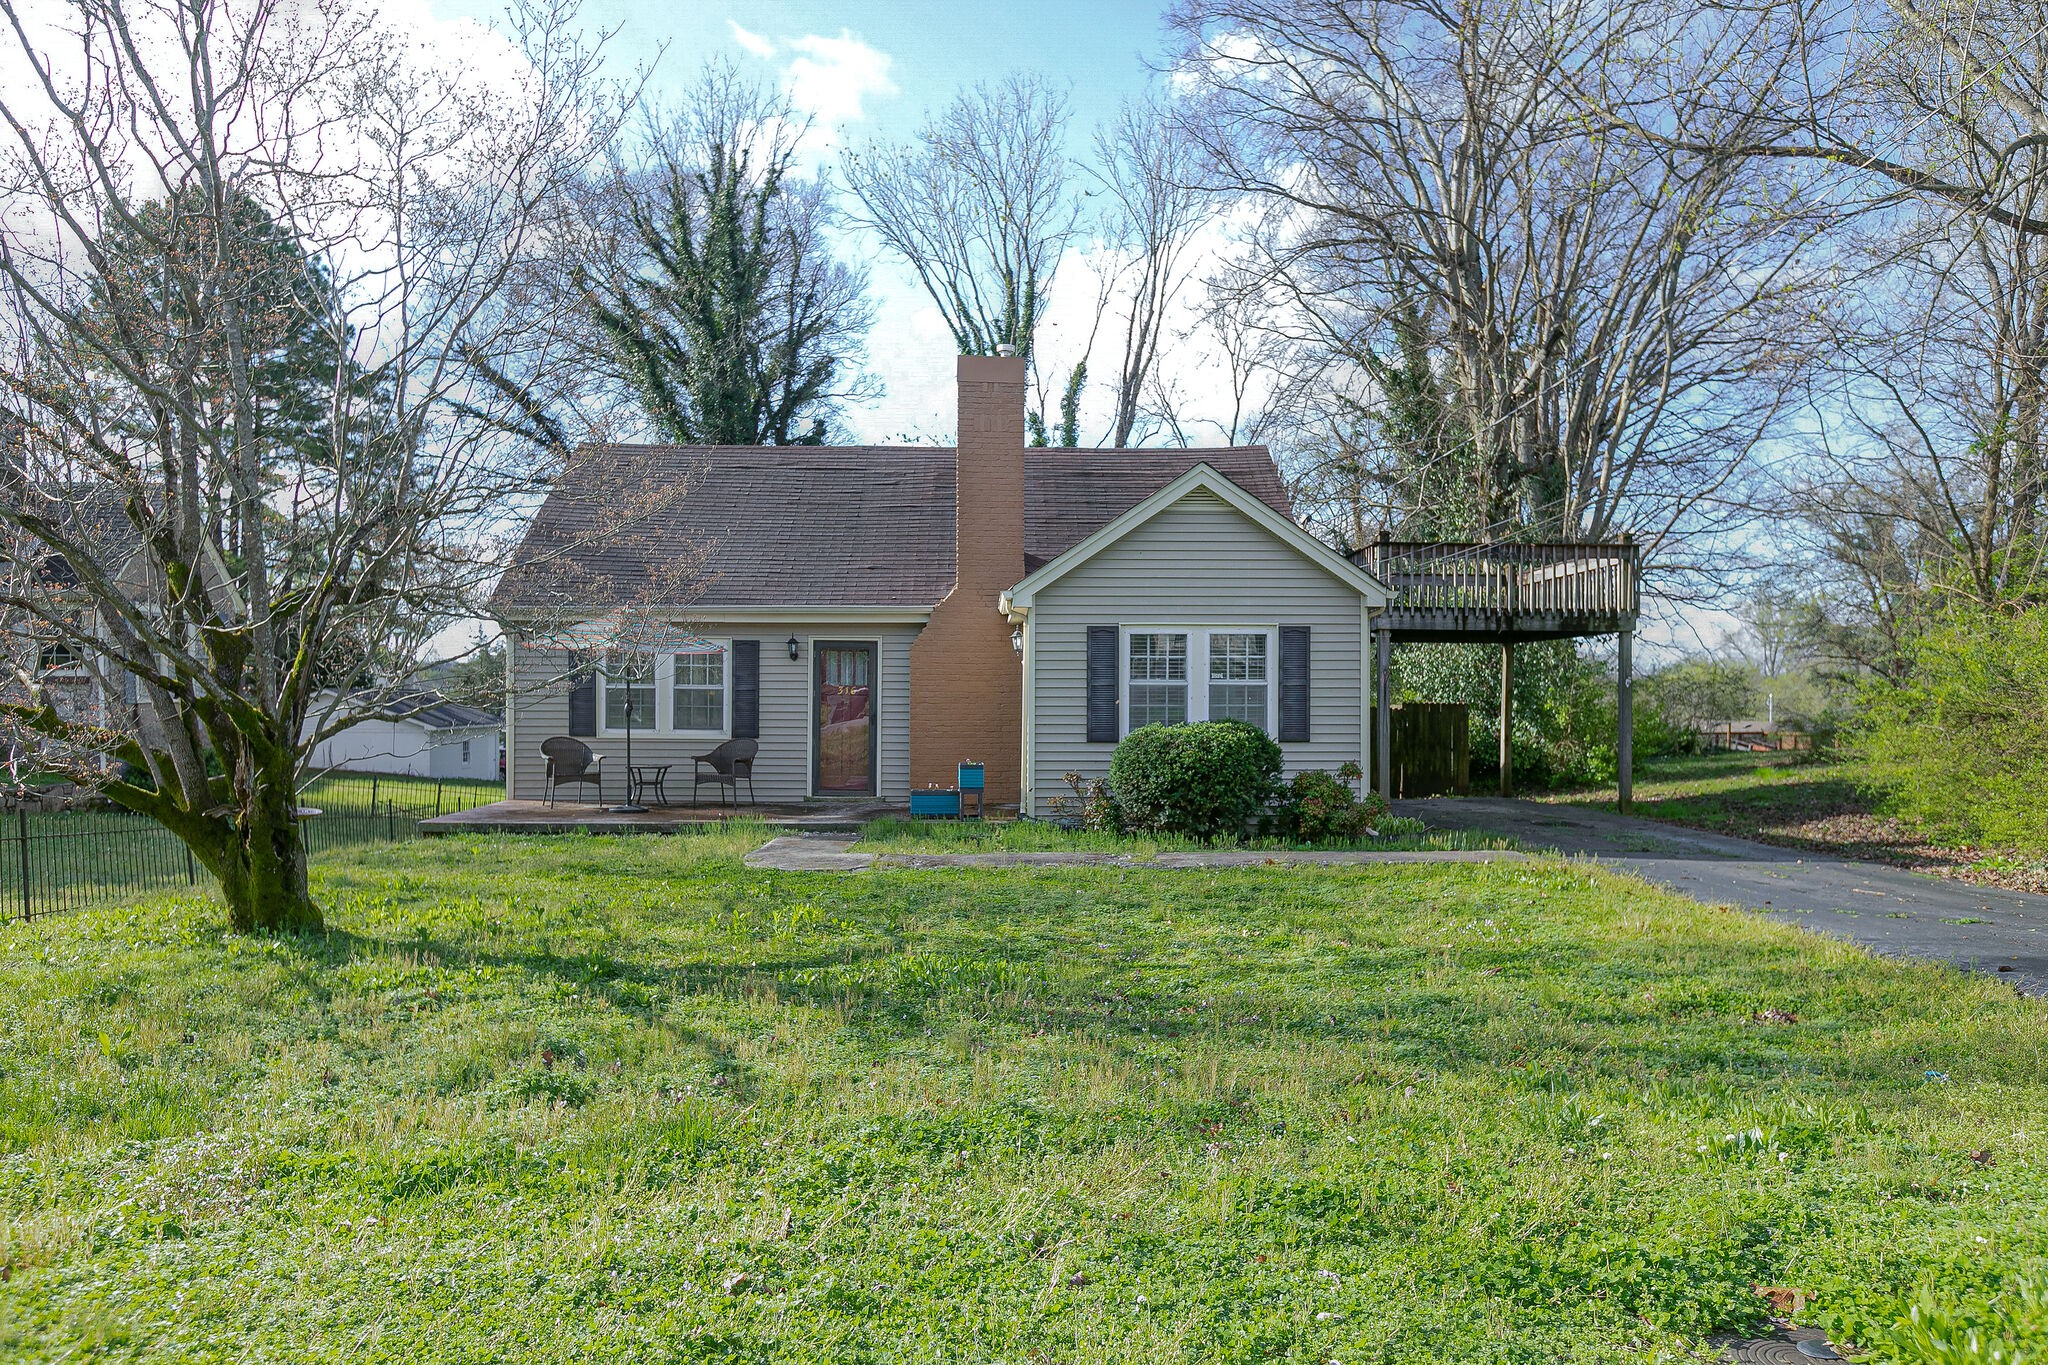 Location! This cozy home is in one of Columbia's most popular areas of Columbia. It is near Riverwalk Park and walking trails.